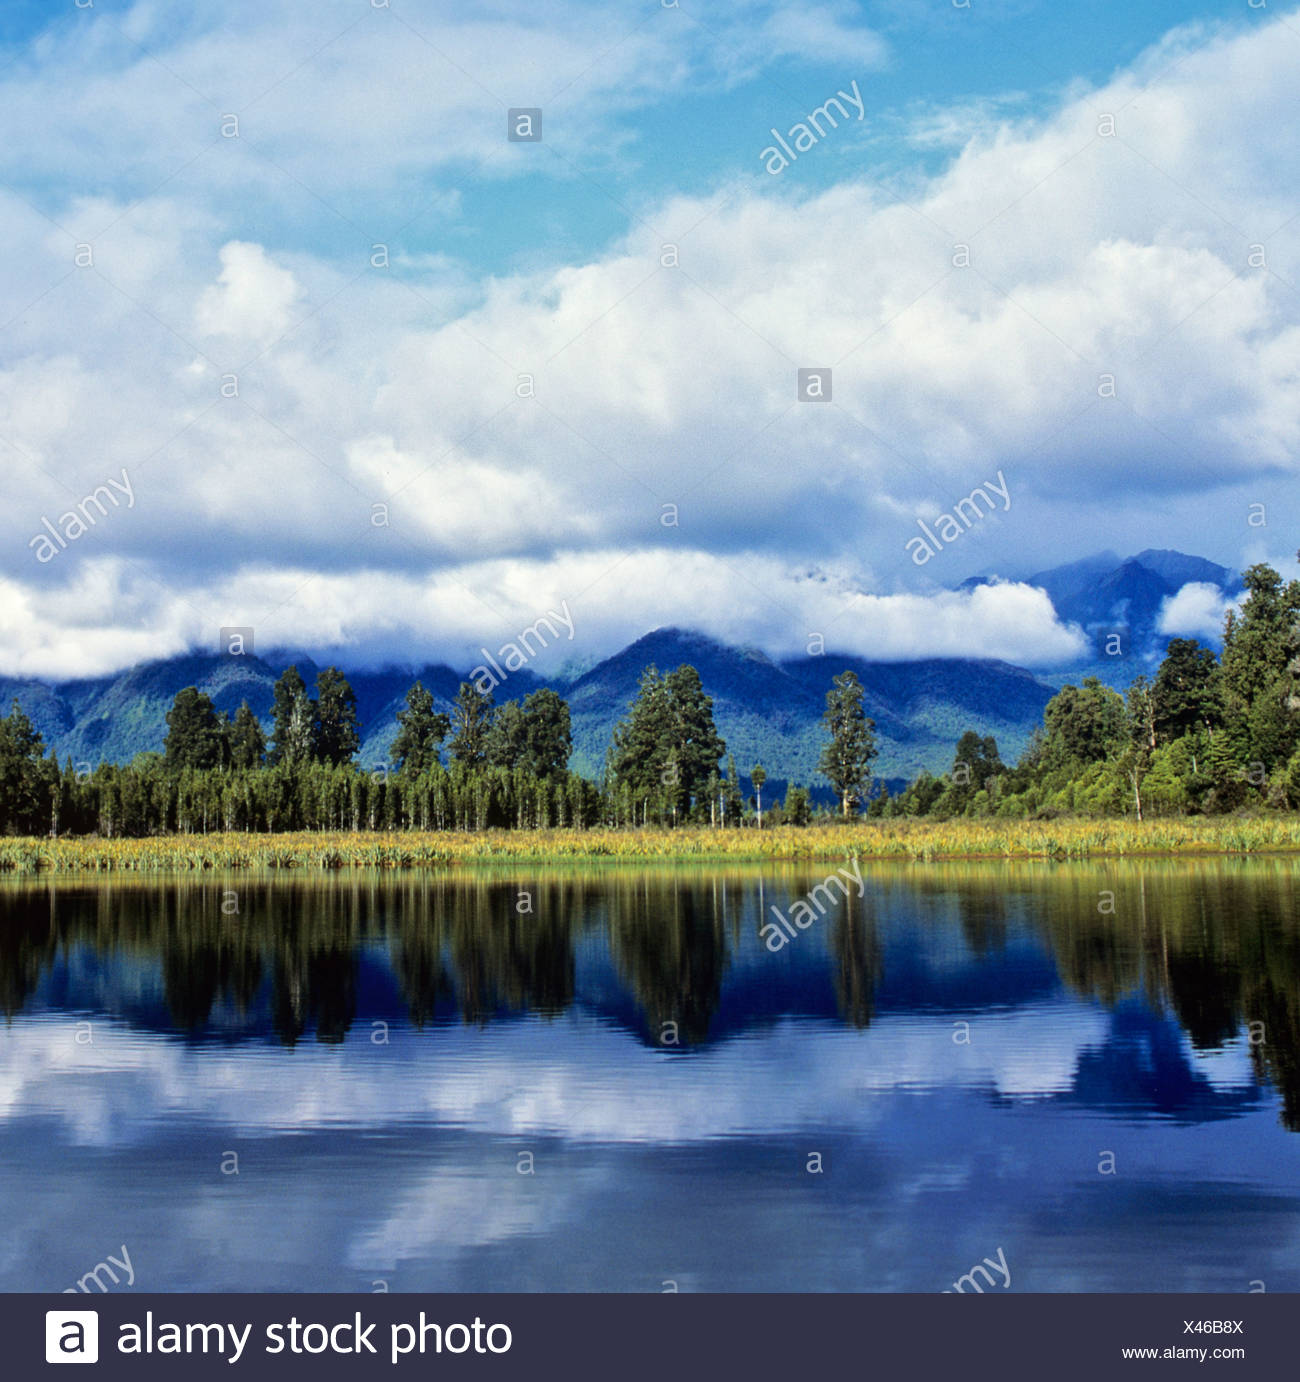 Matheson Lake with reflection on surface, Southern Alps, South Island, New Zealand - Stock Image